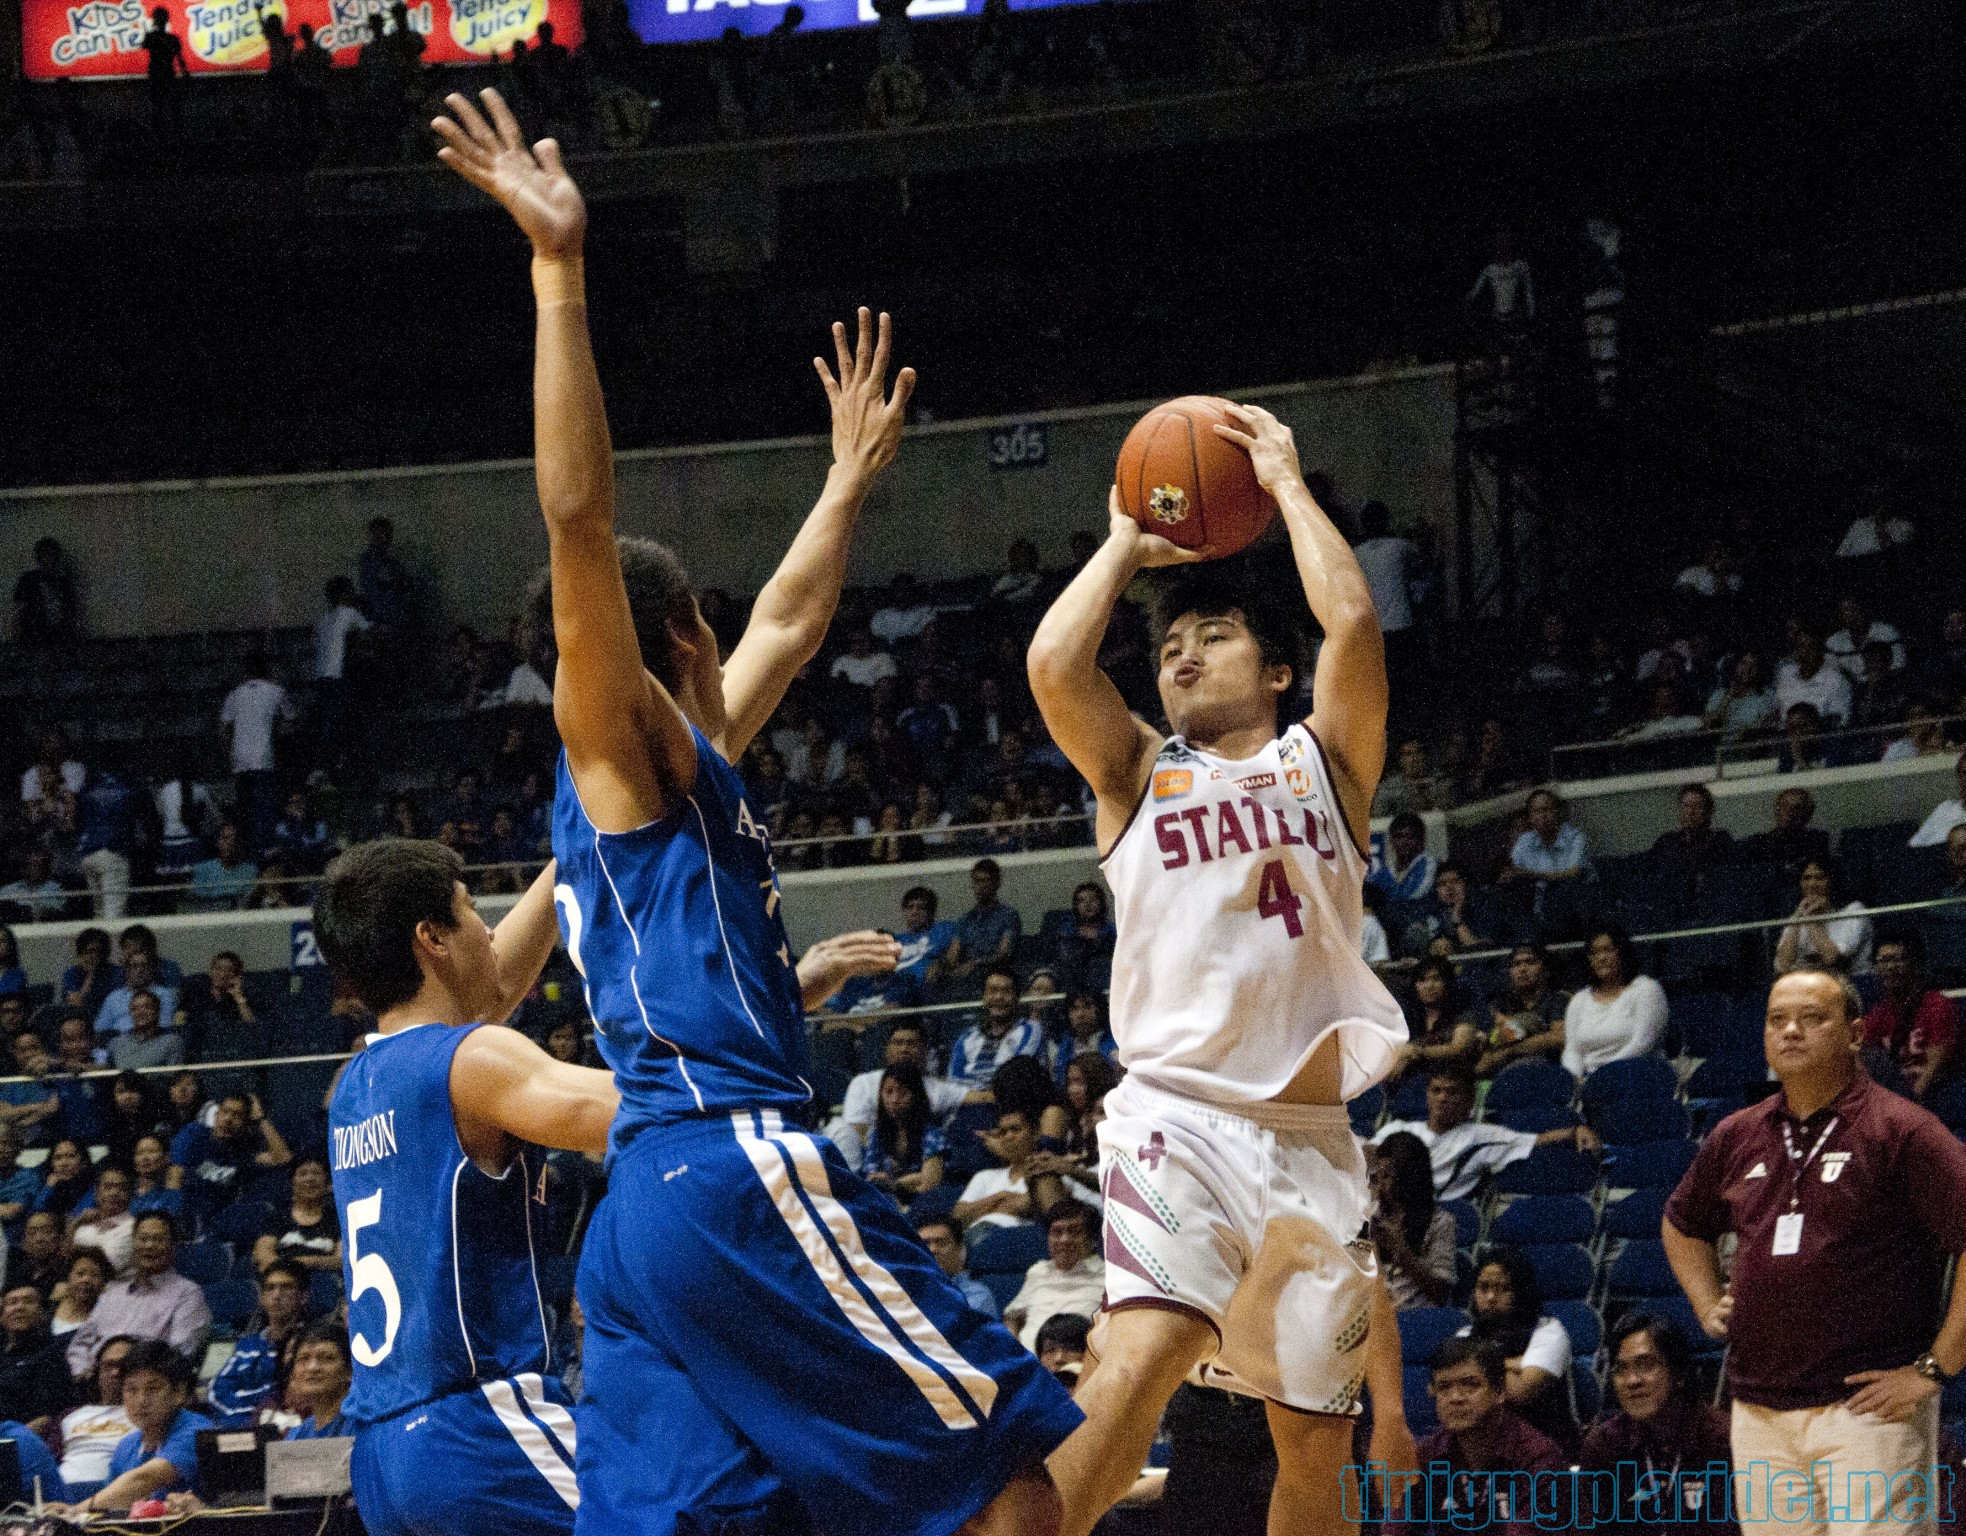 Ateneo batters UP behind Slaughter's double-double